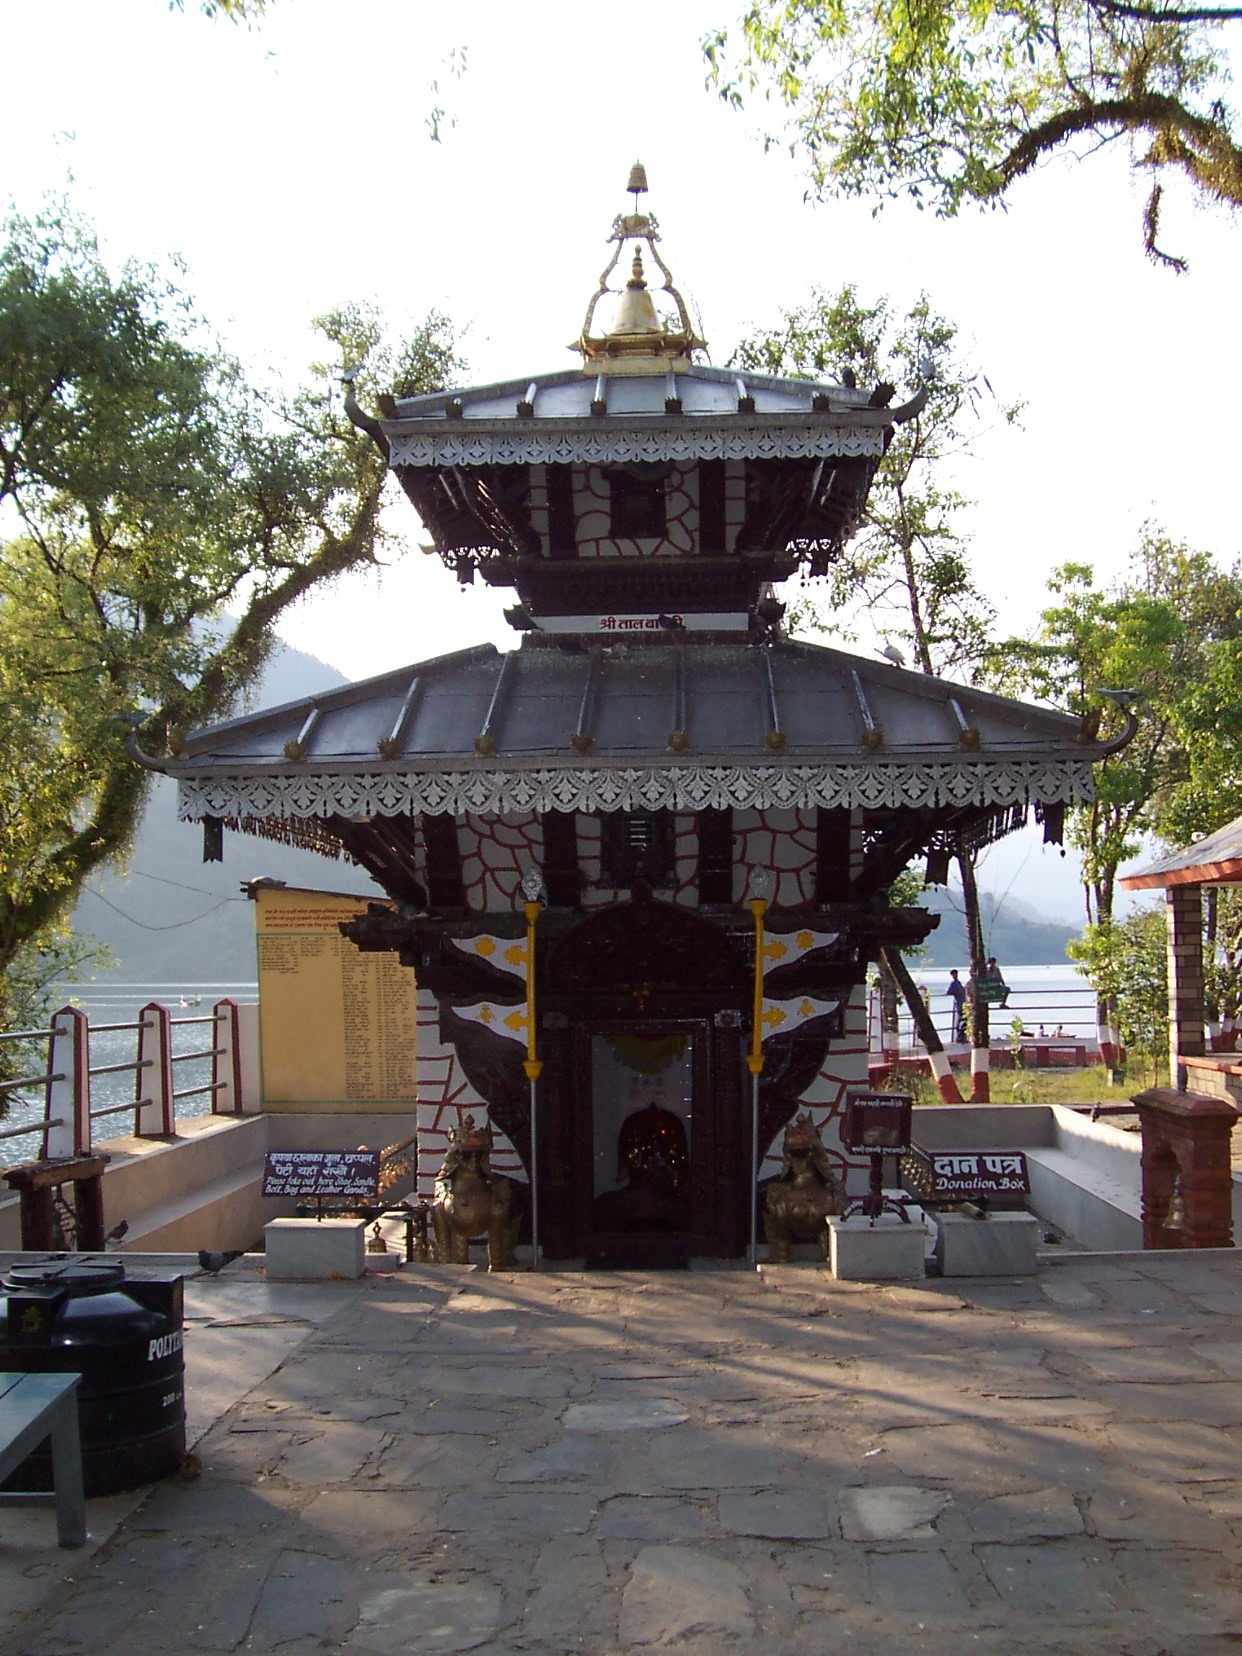 annet little asian shrine temple traditional architecture